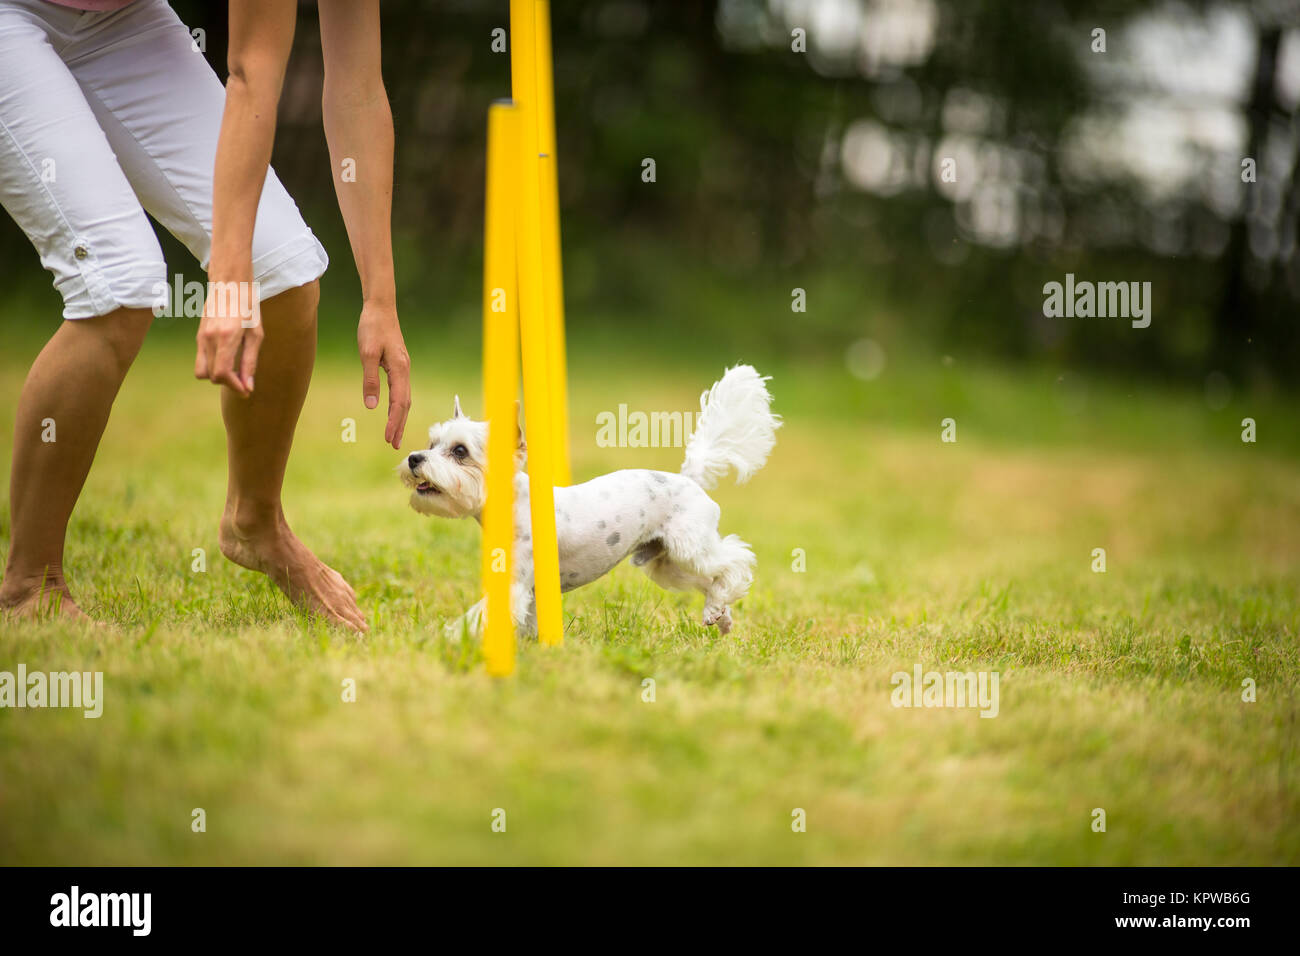 Cute little dog doing agility drill - running slalom, being obediend and making his master proud and happy - Stock Image